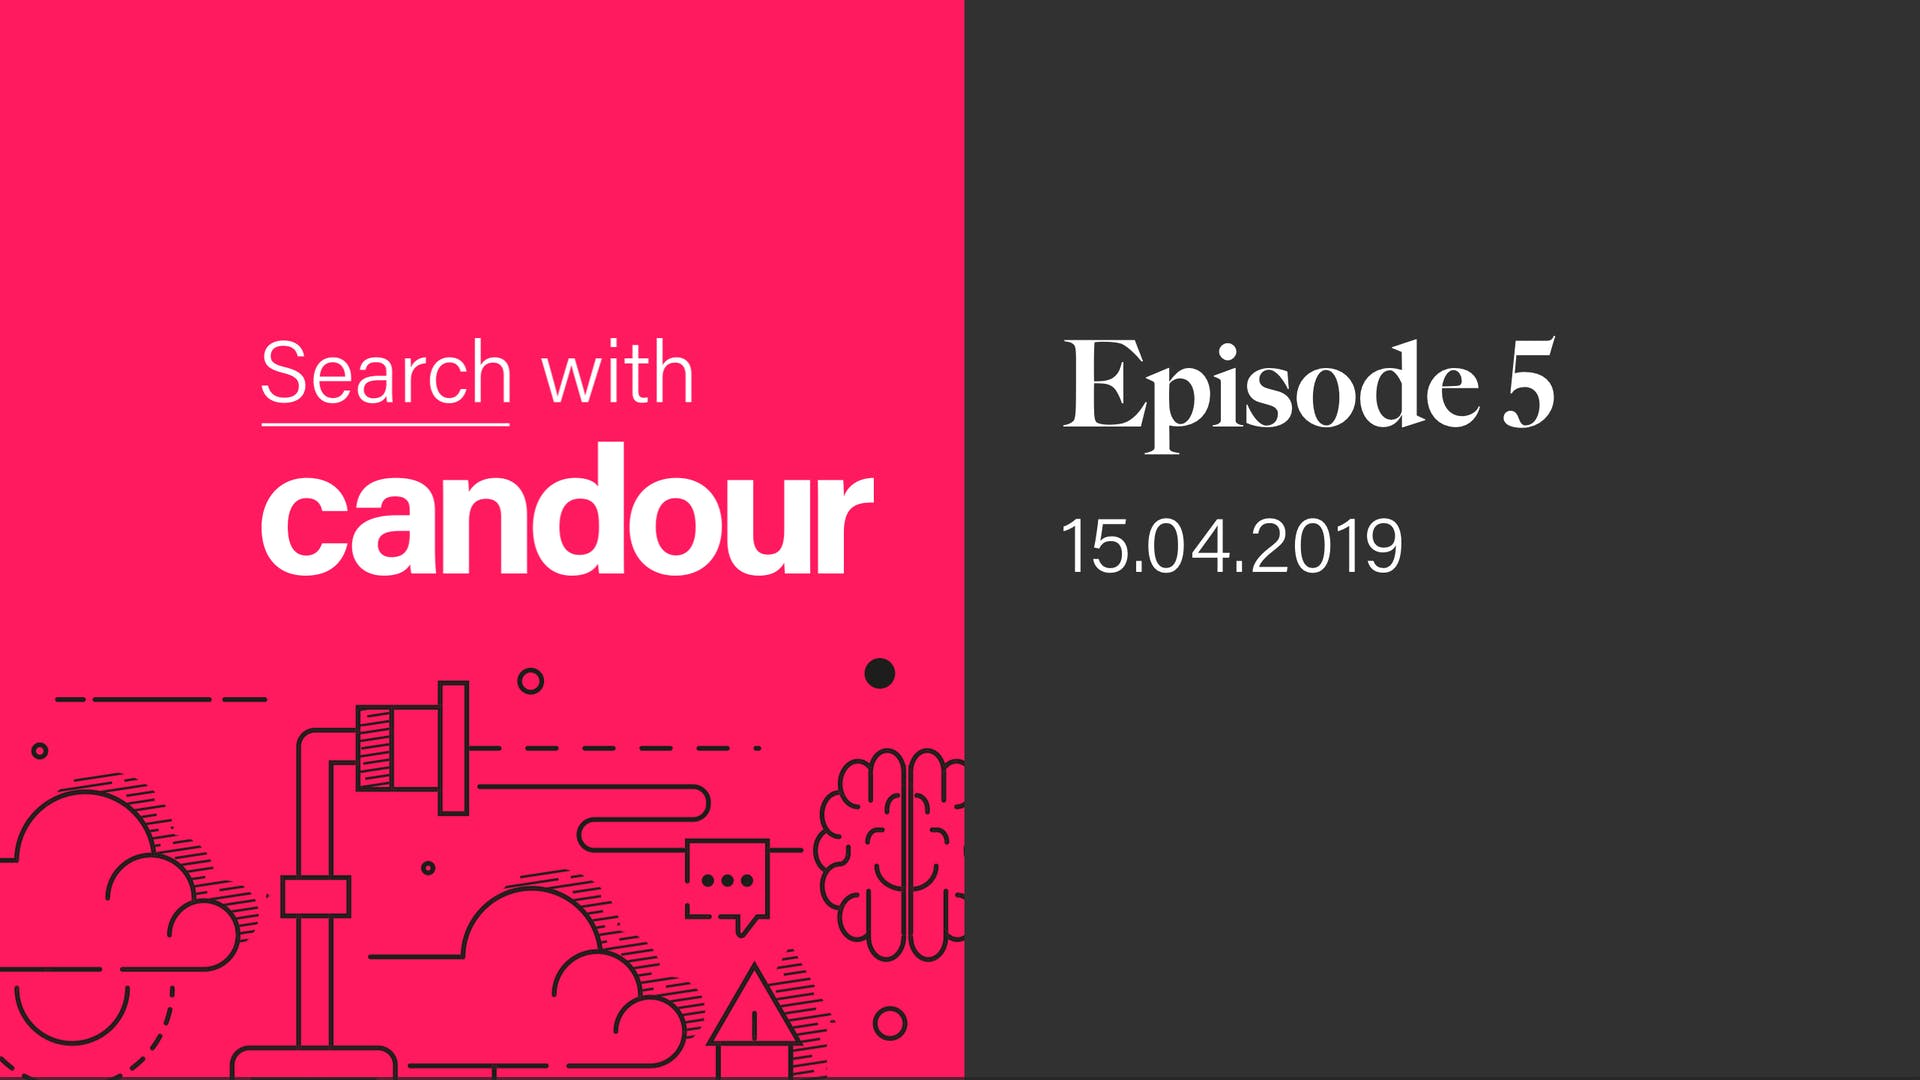 Search with Candour podcast - Episode 5